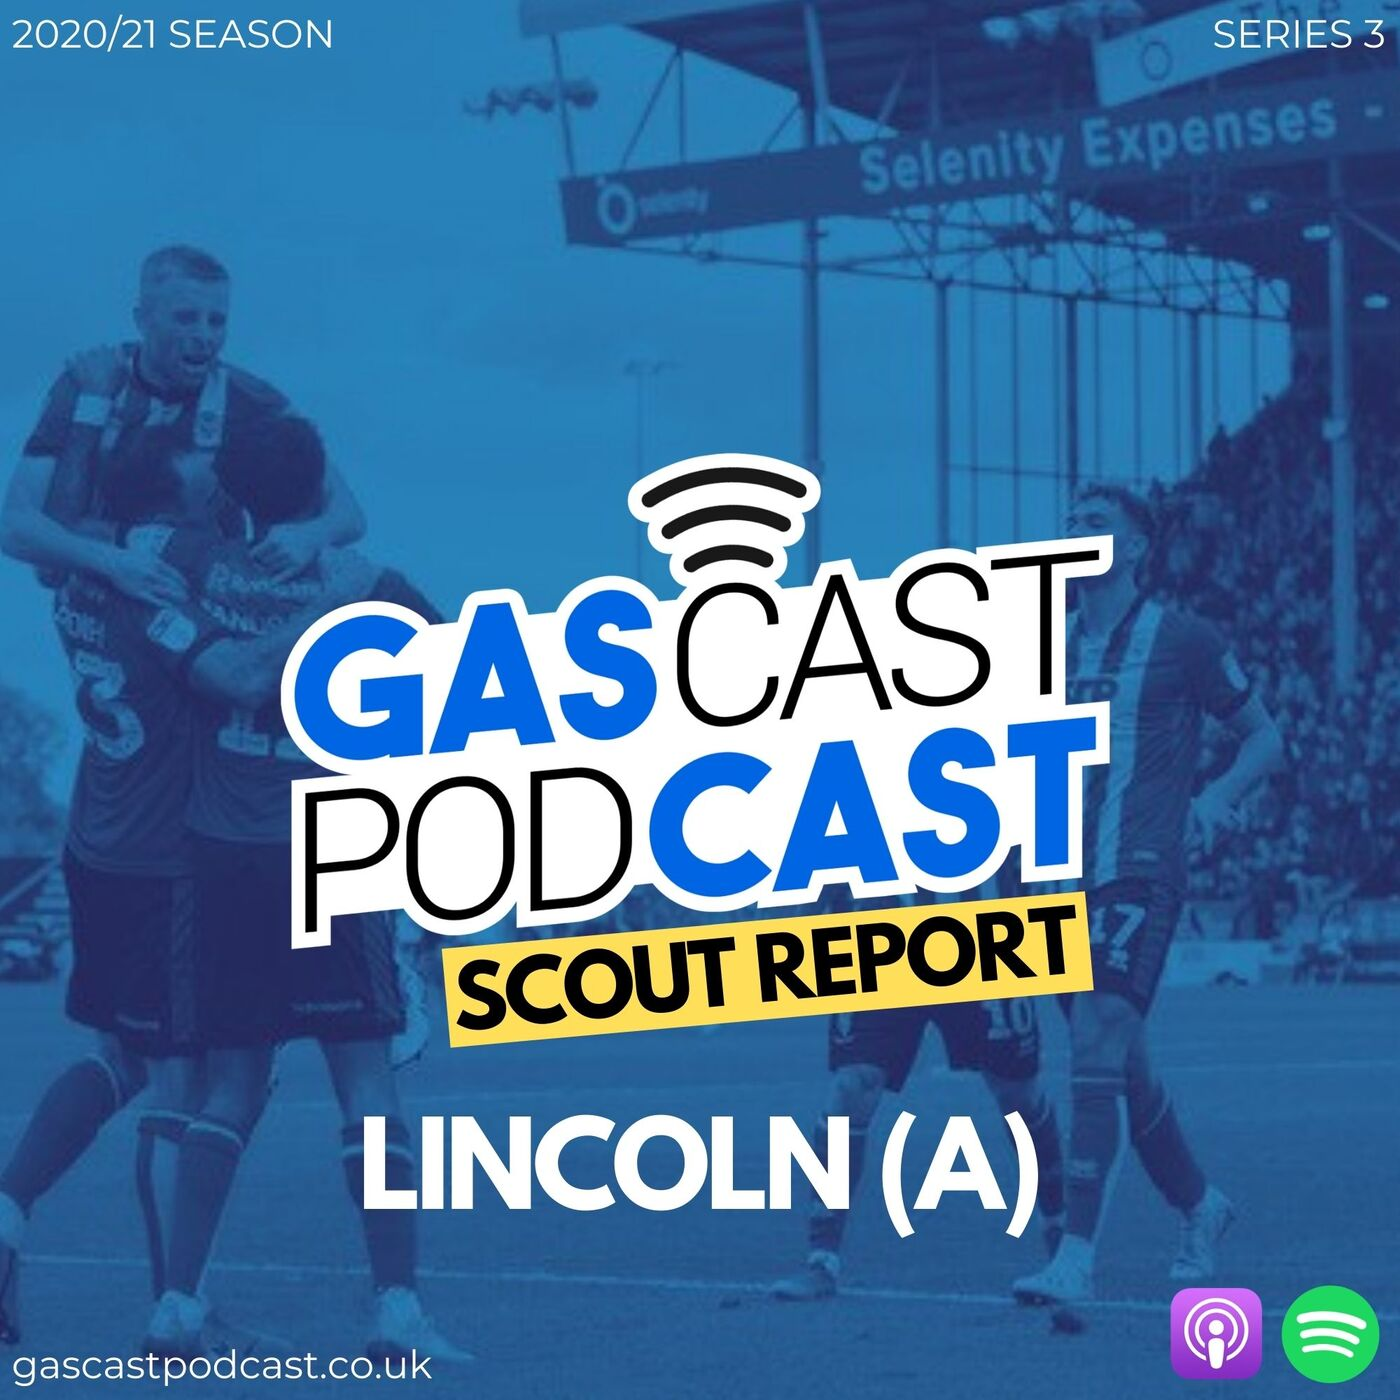 SCOUT REPORT: Lincoln City (A)